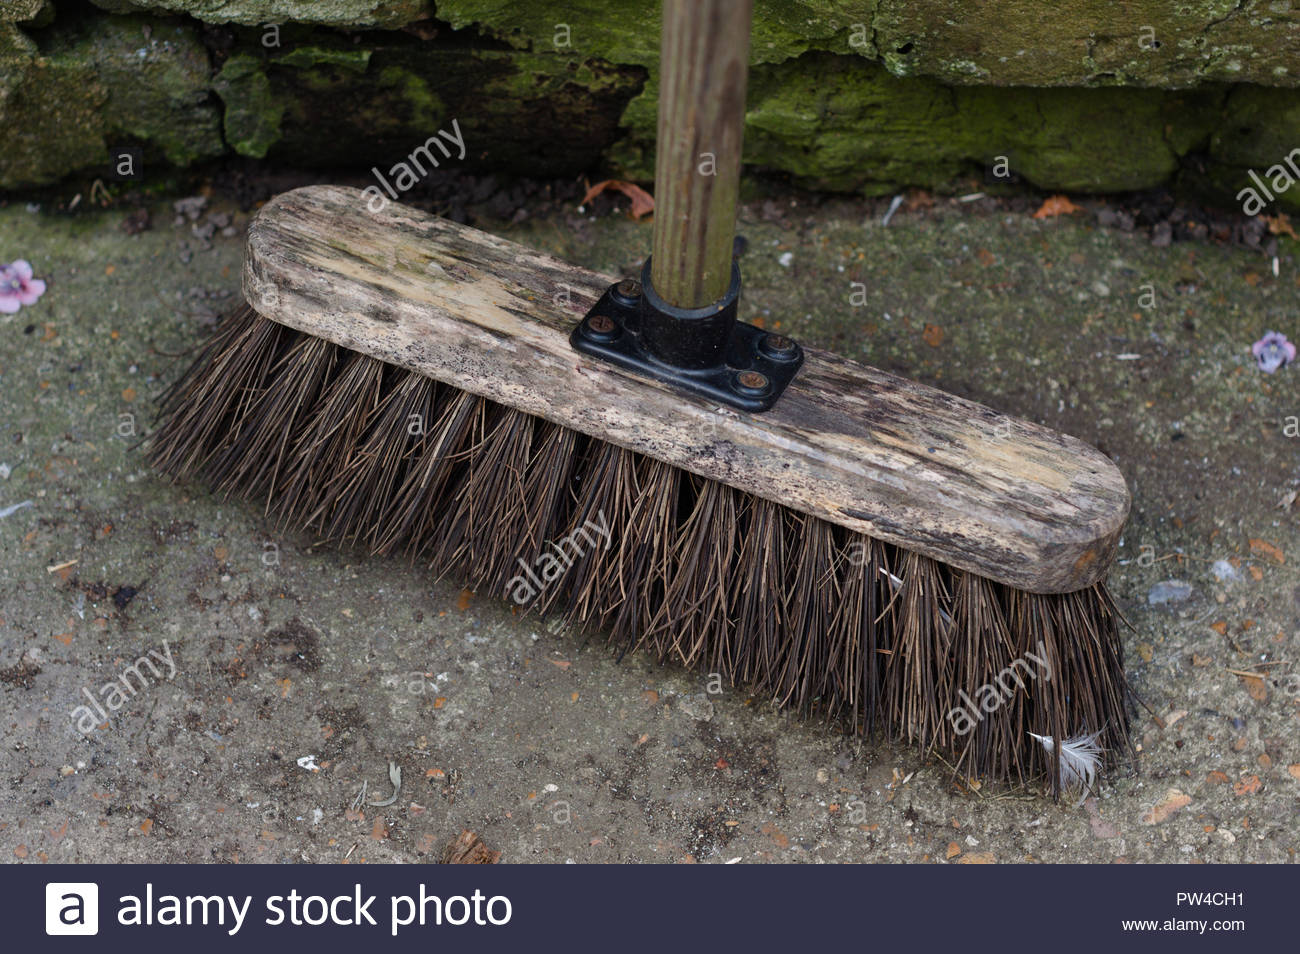 Garden broom standing against stone wall - Stock Image